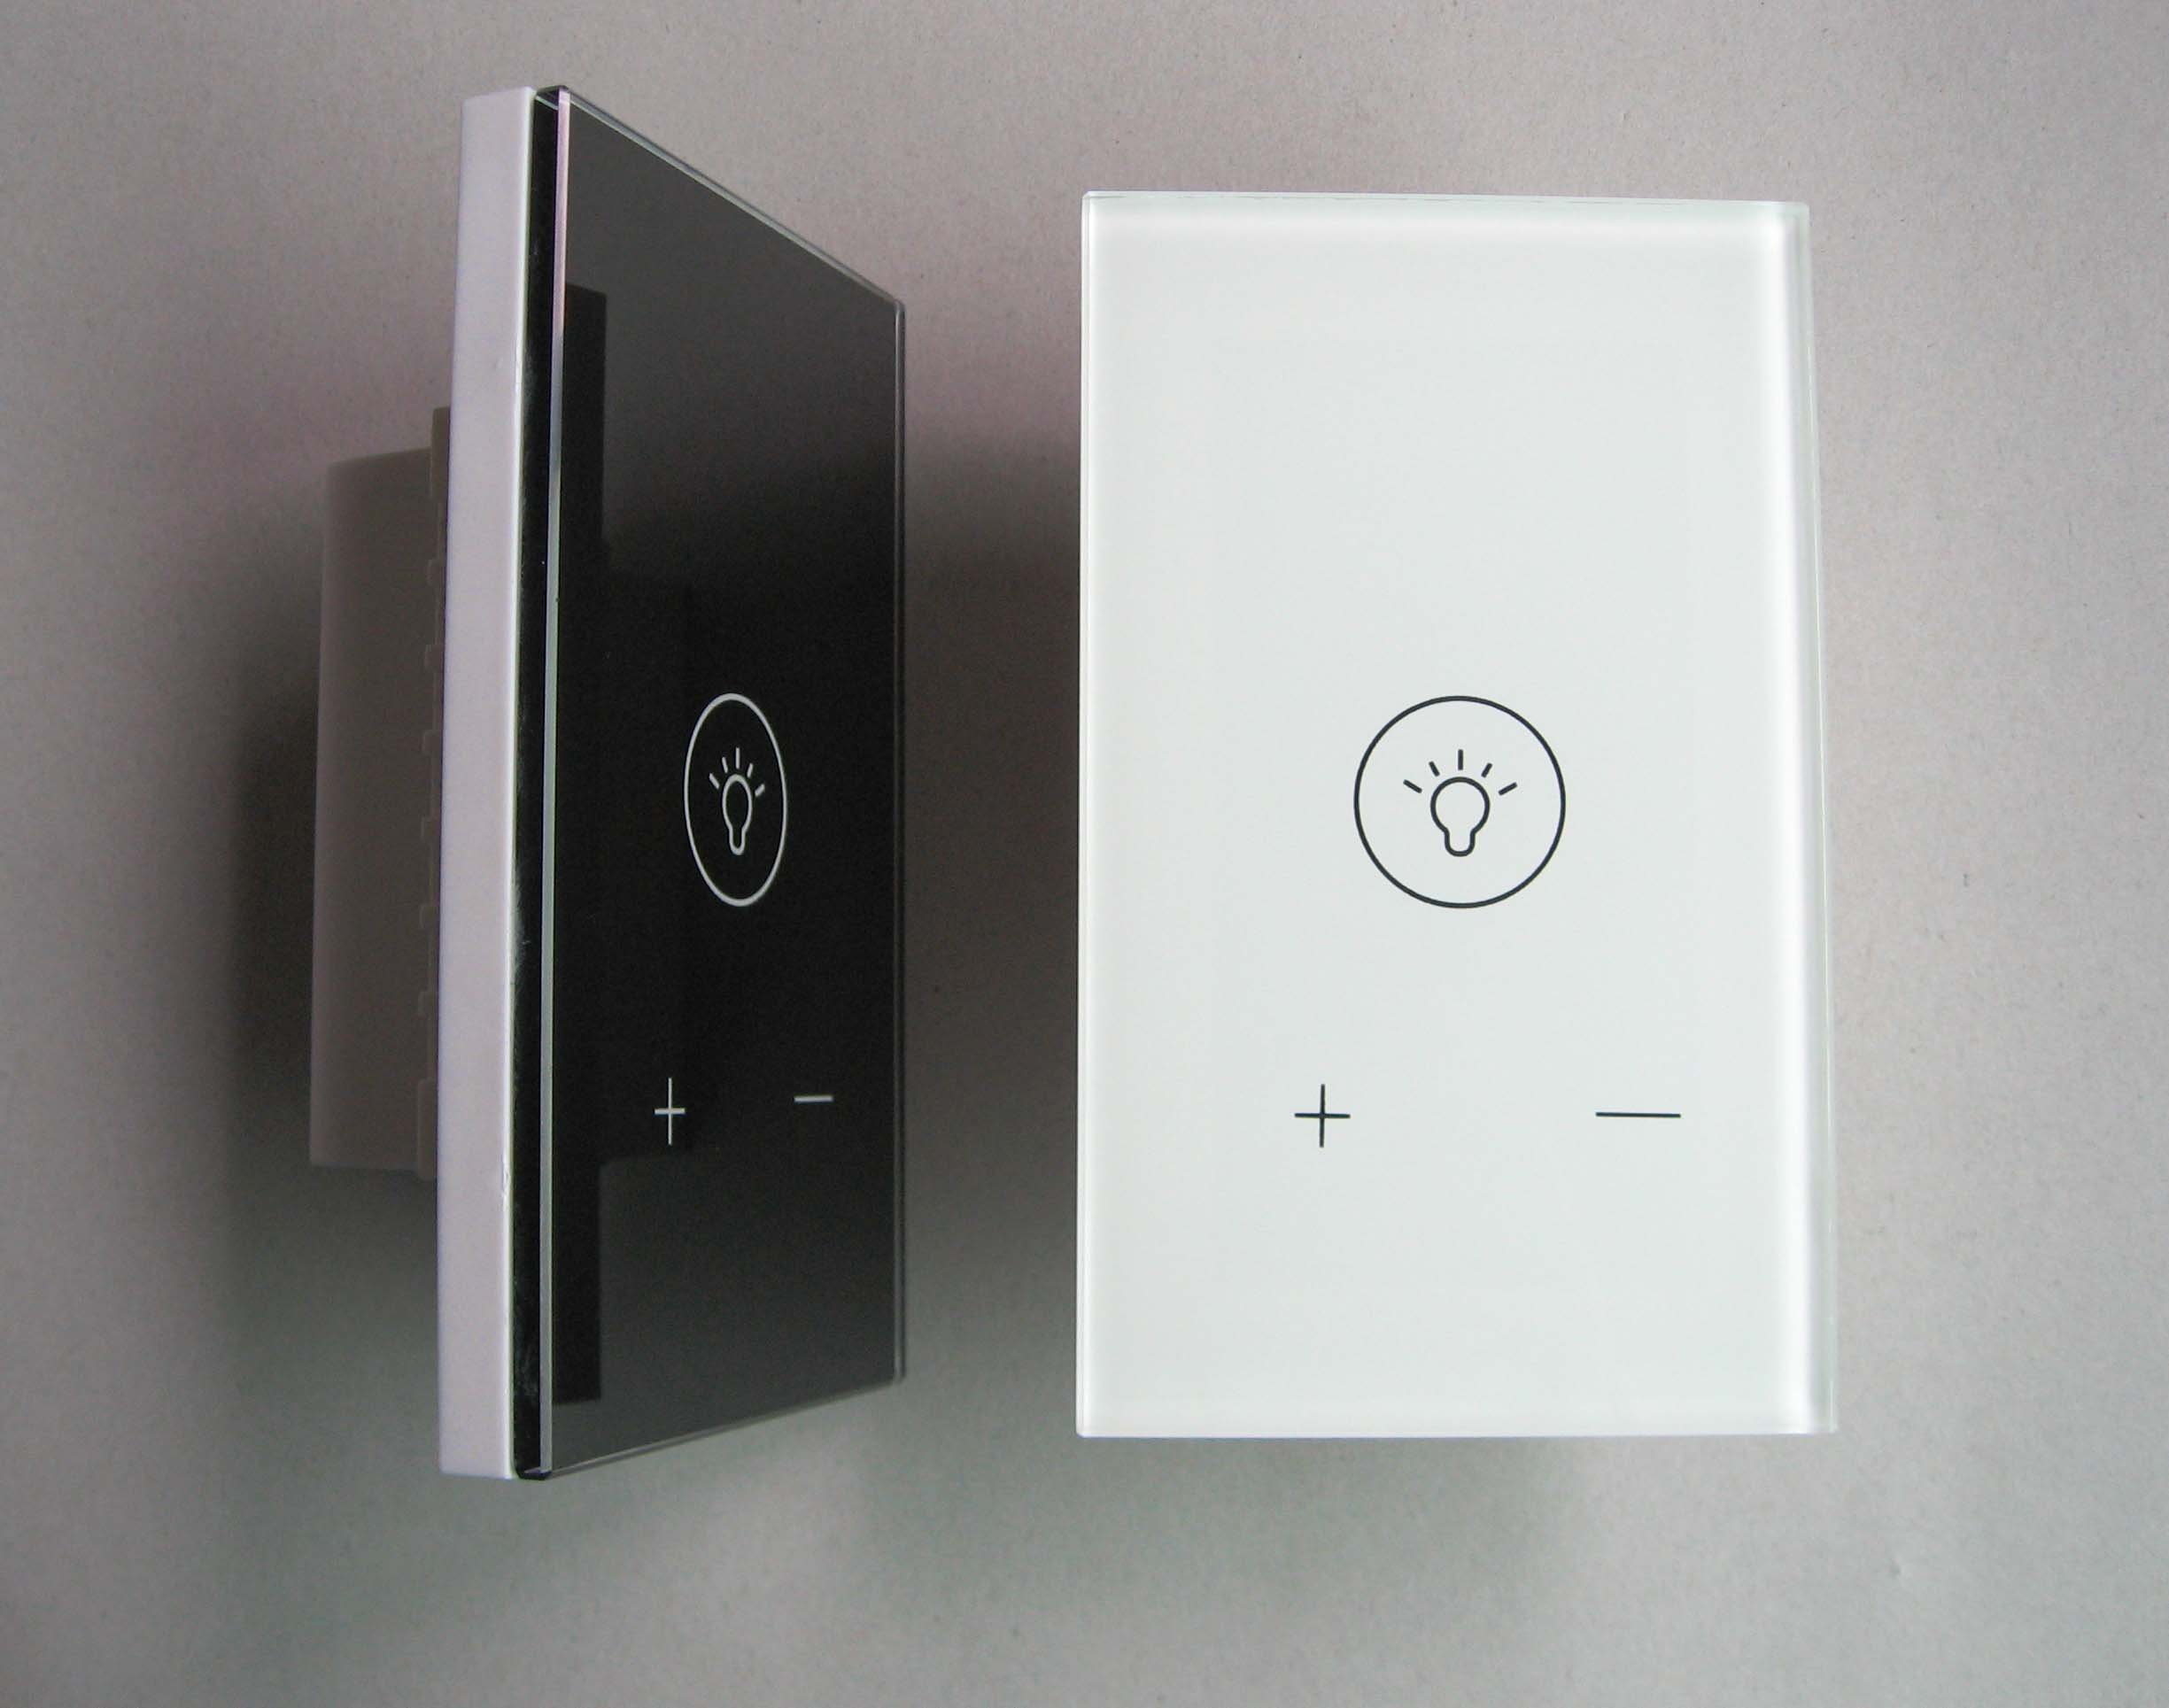 us standard touch dimmer switch touch dimmer function light switch glass panel light dimmer. Black Bedroom Furniture Sets. Home Design Ideas